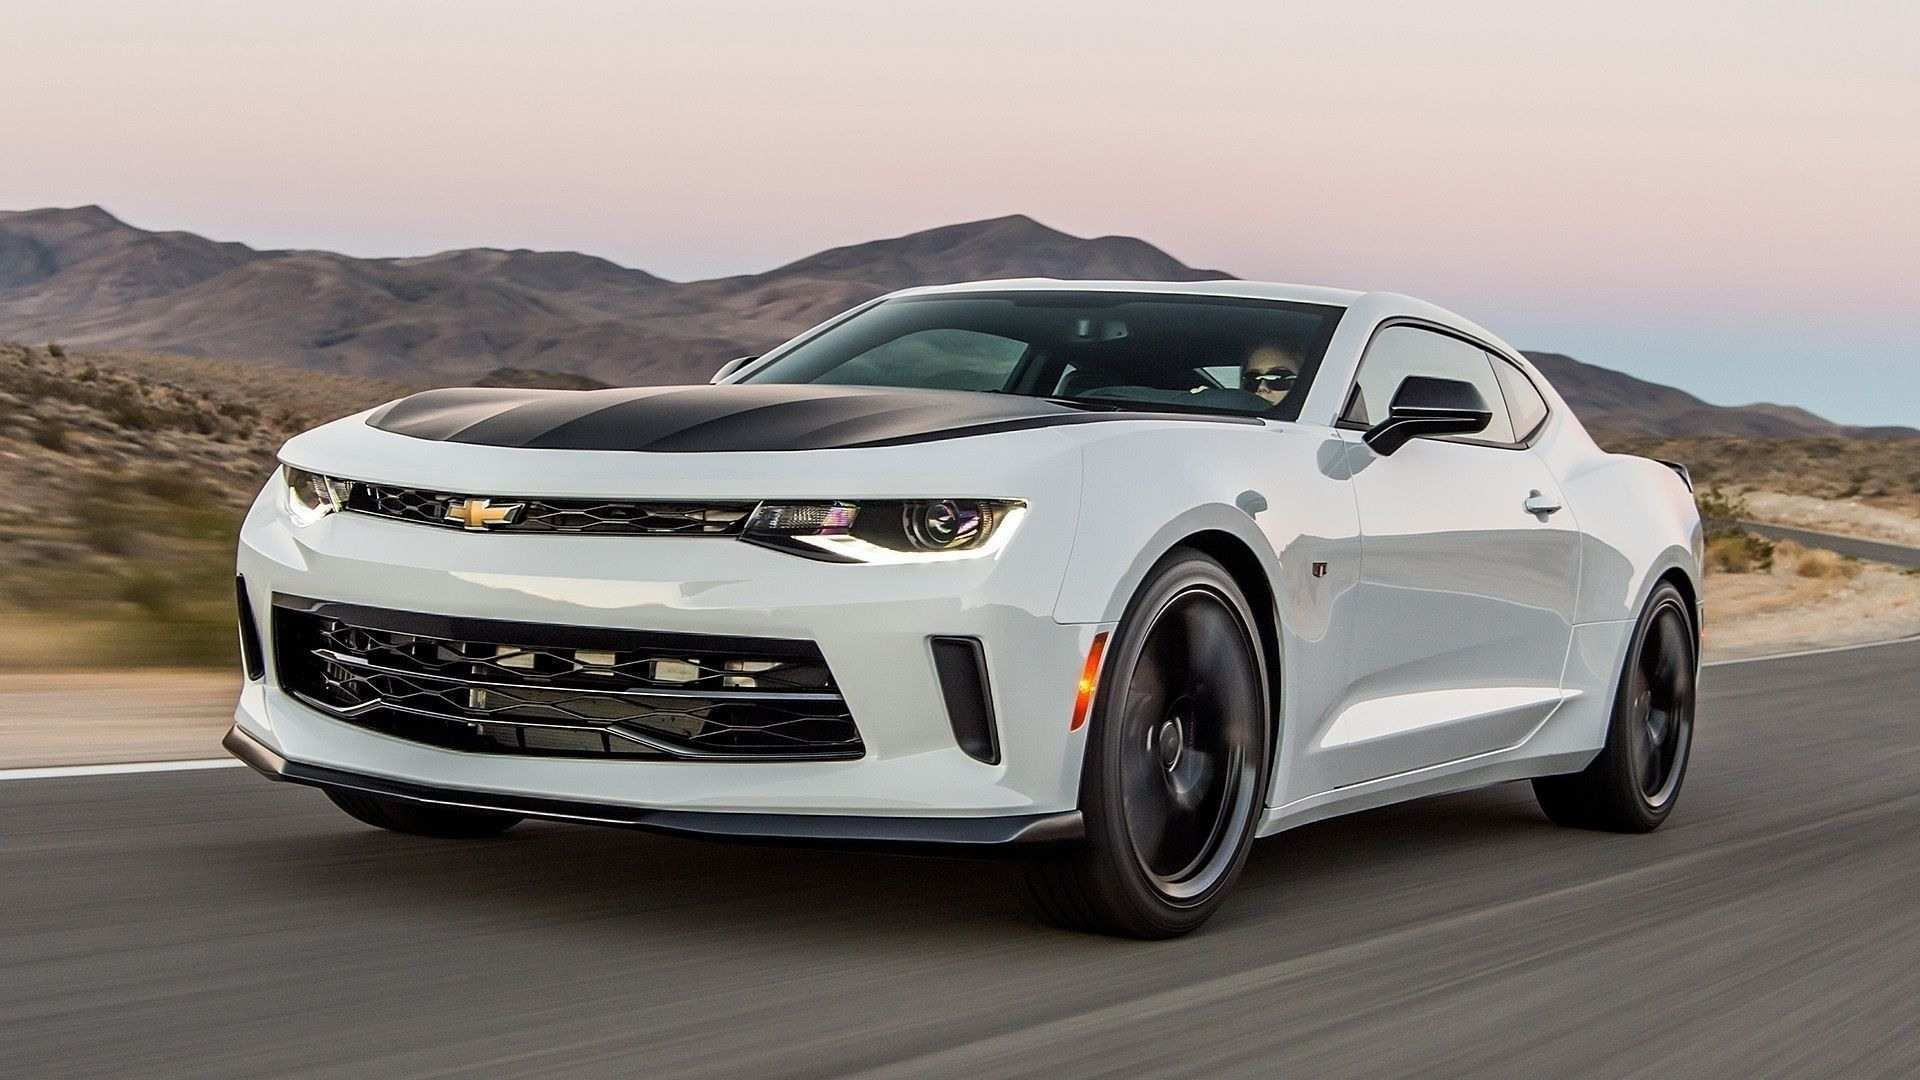 56 The Best 2019 Chevy Camaro Competition Arrival Speed Test